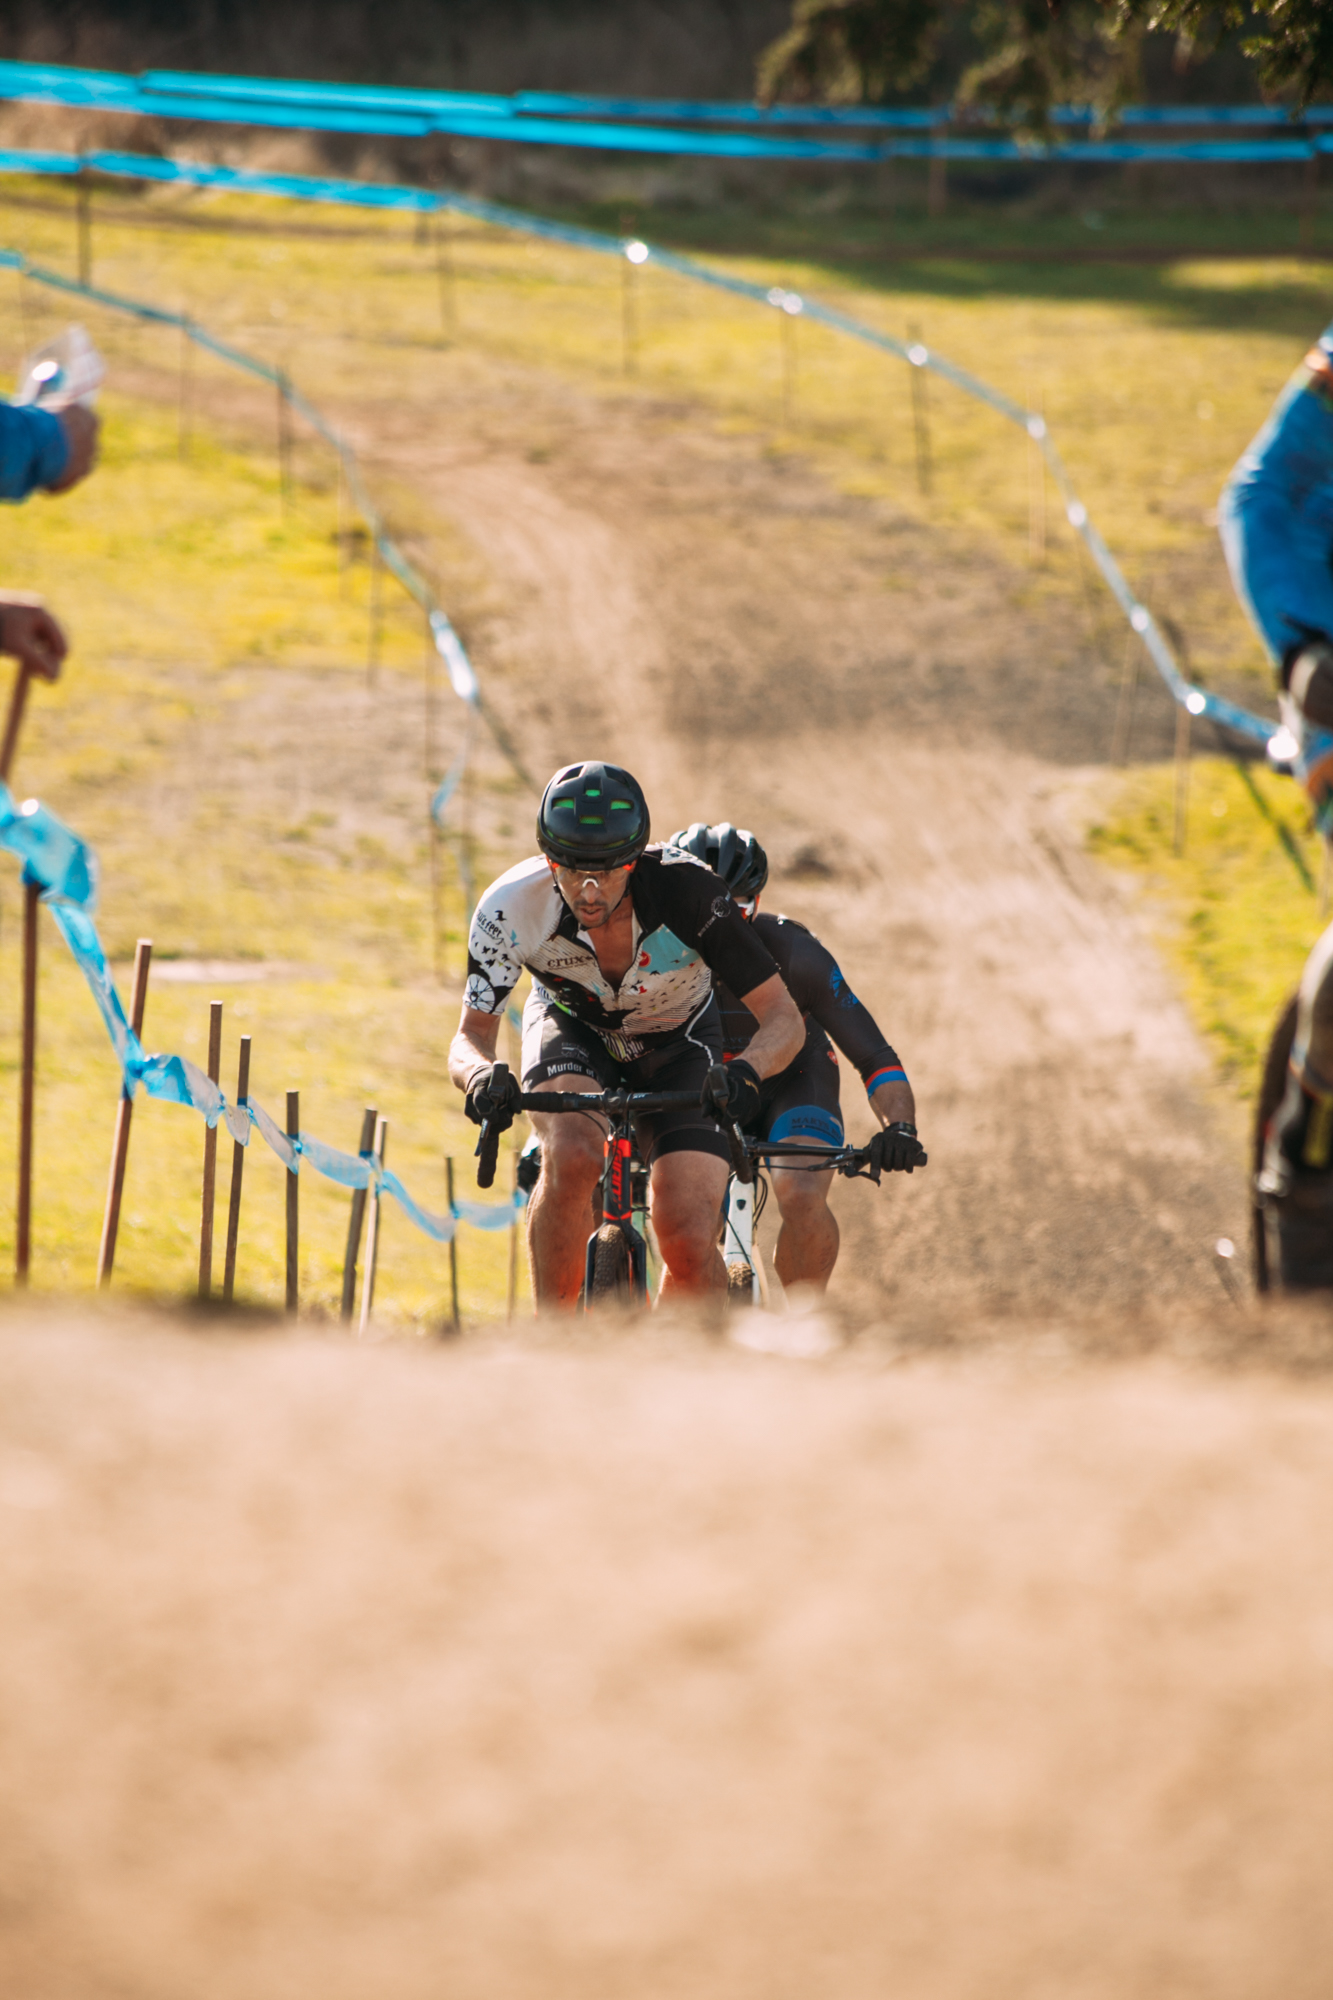 Cyclocross18_CCCX_RainierHS-195-mettlecycling.jpg